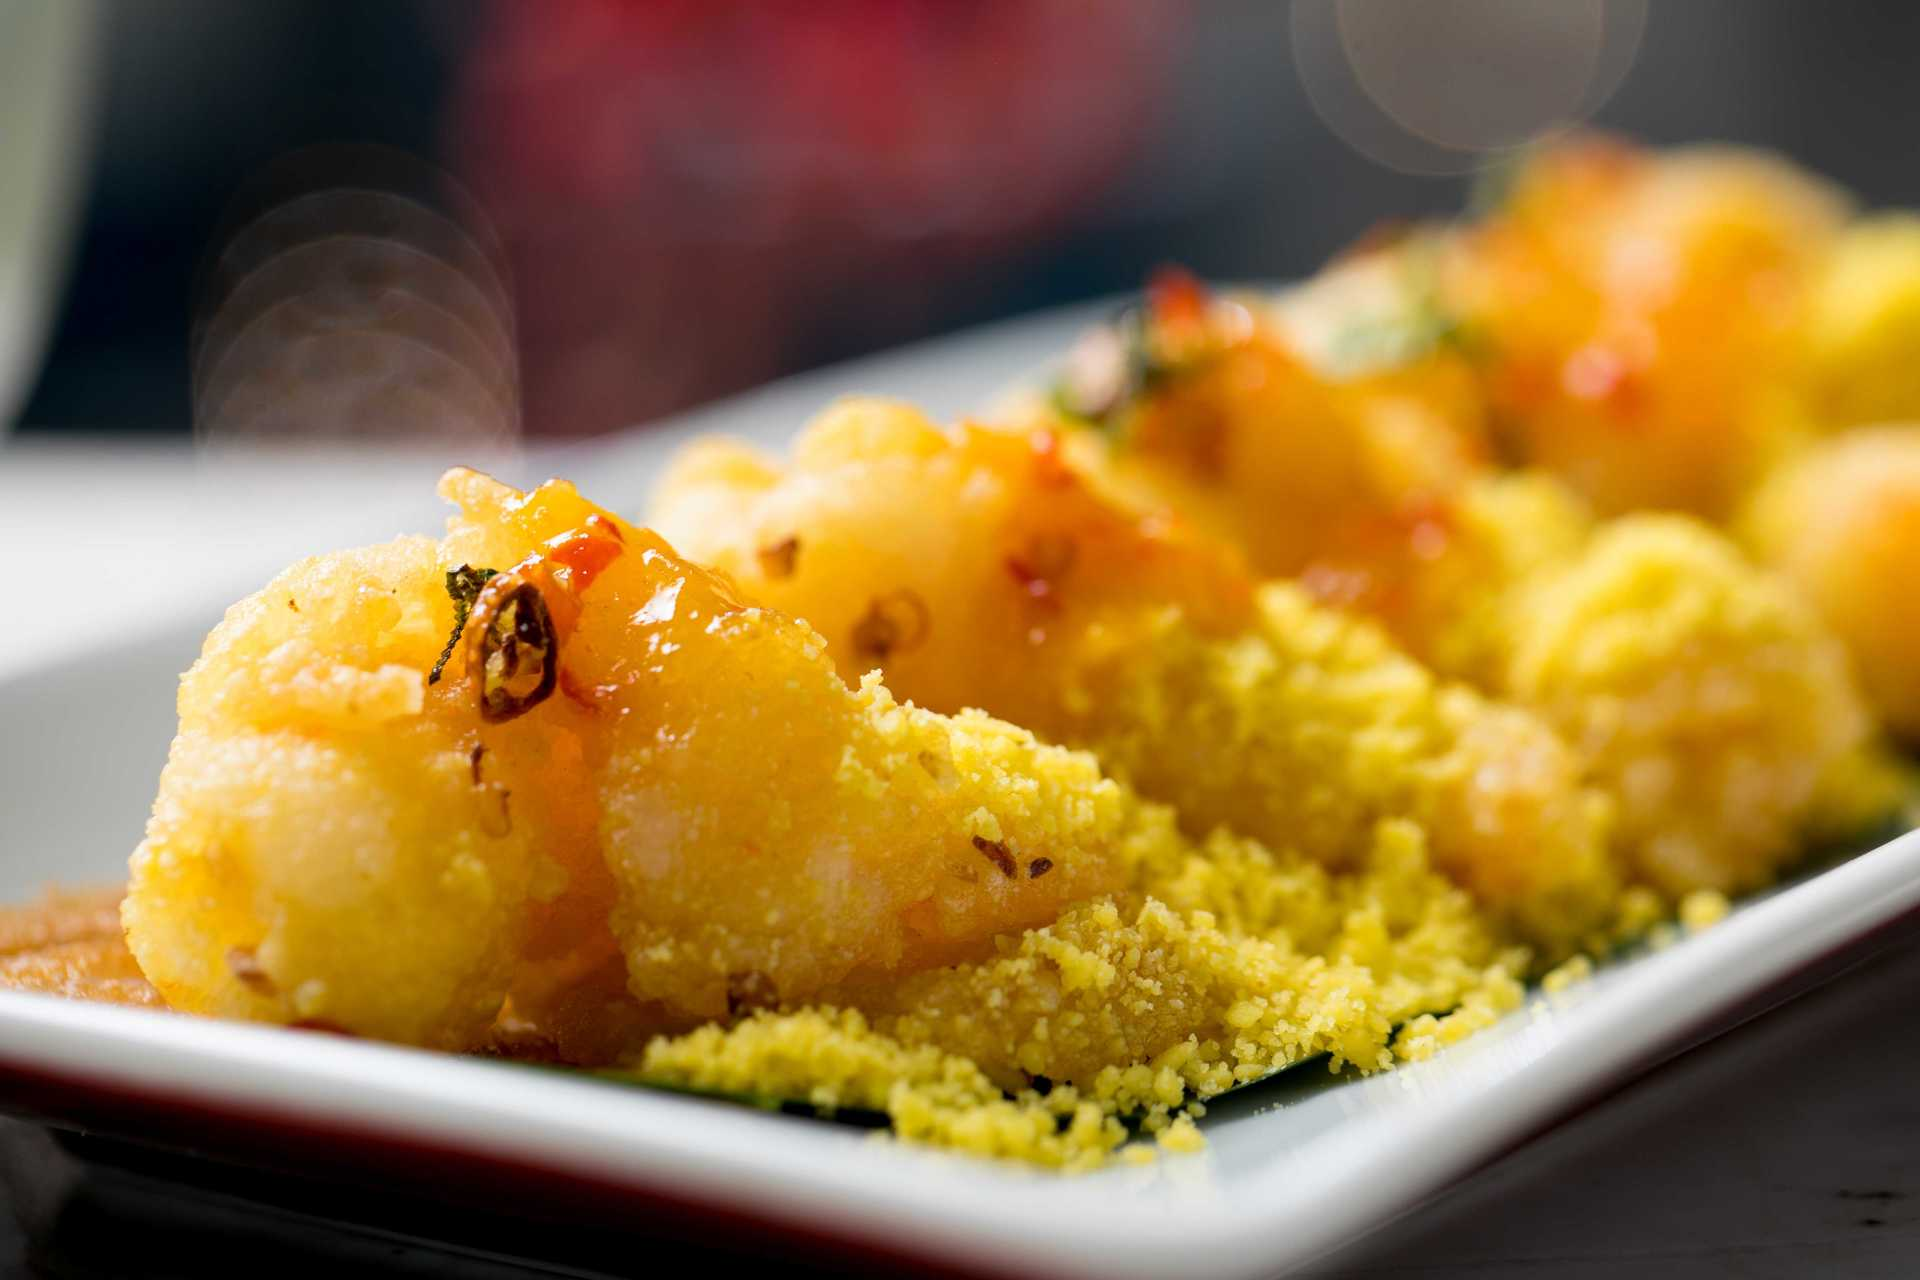 All Things Sassy - Golden fortune prawn in lime sauce 6